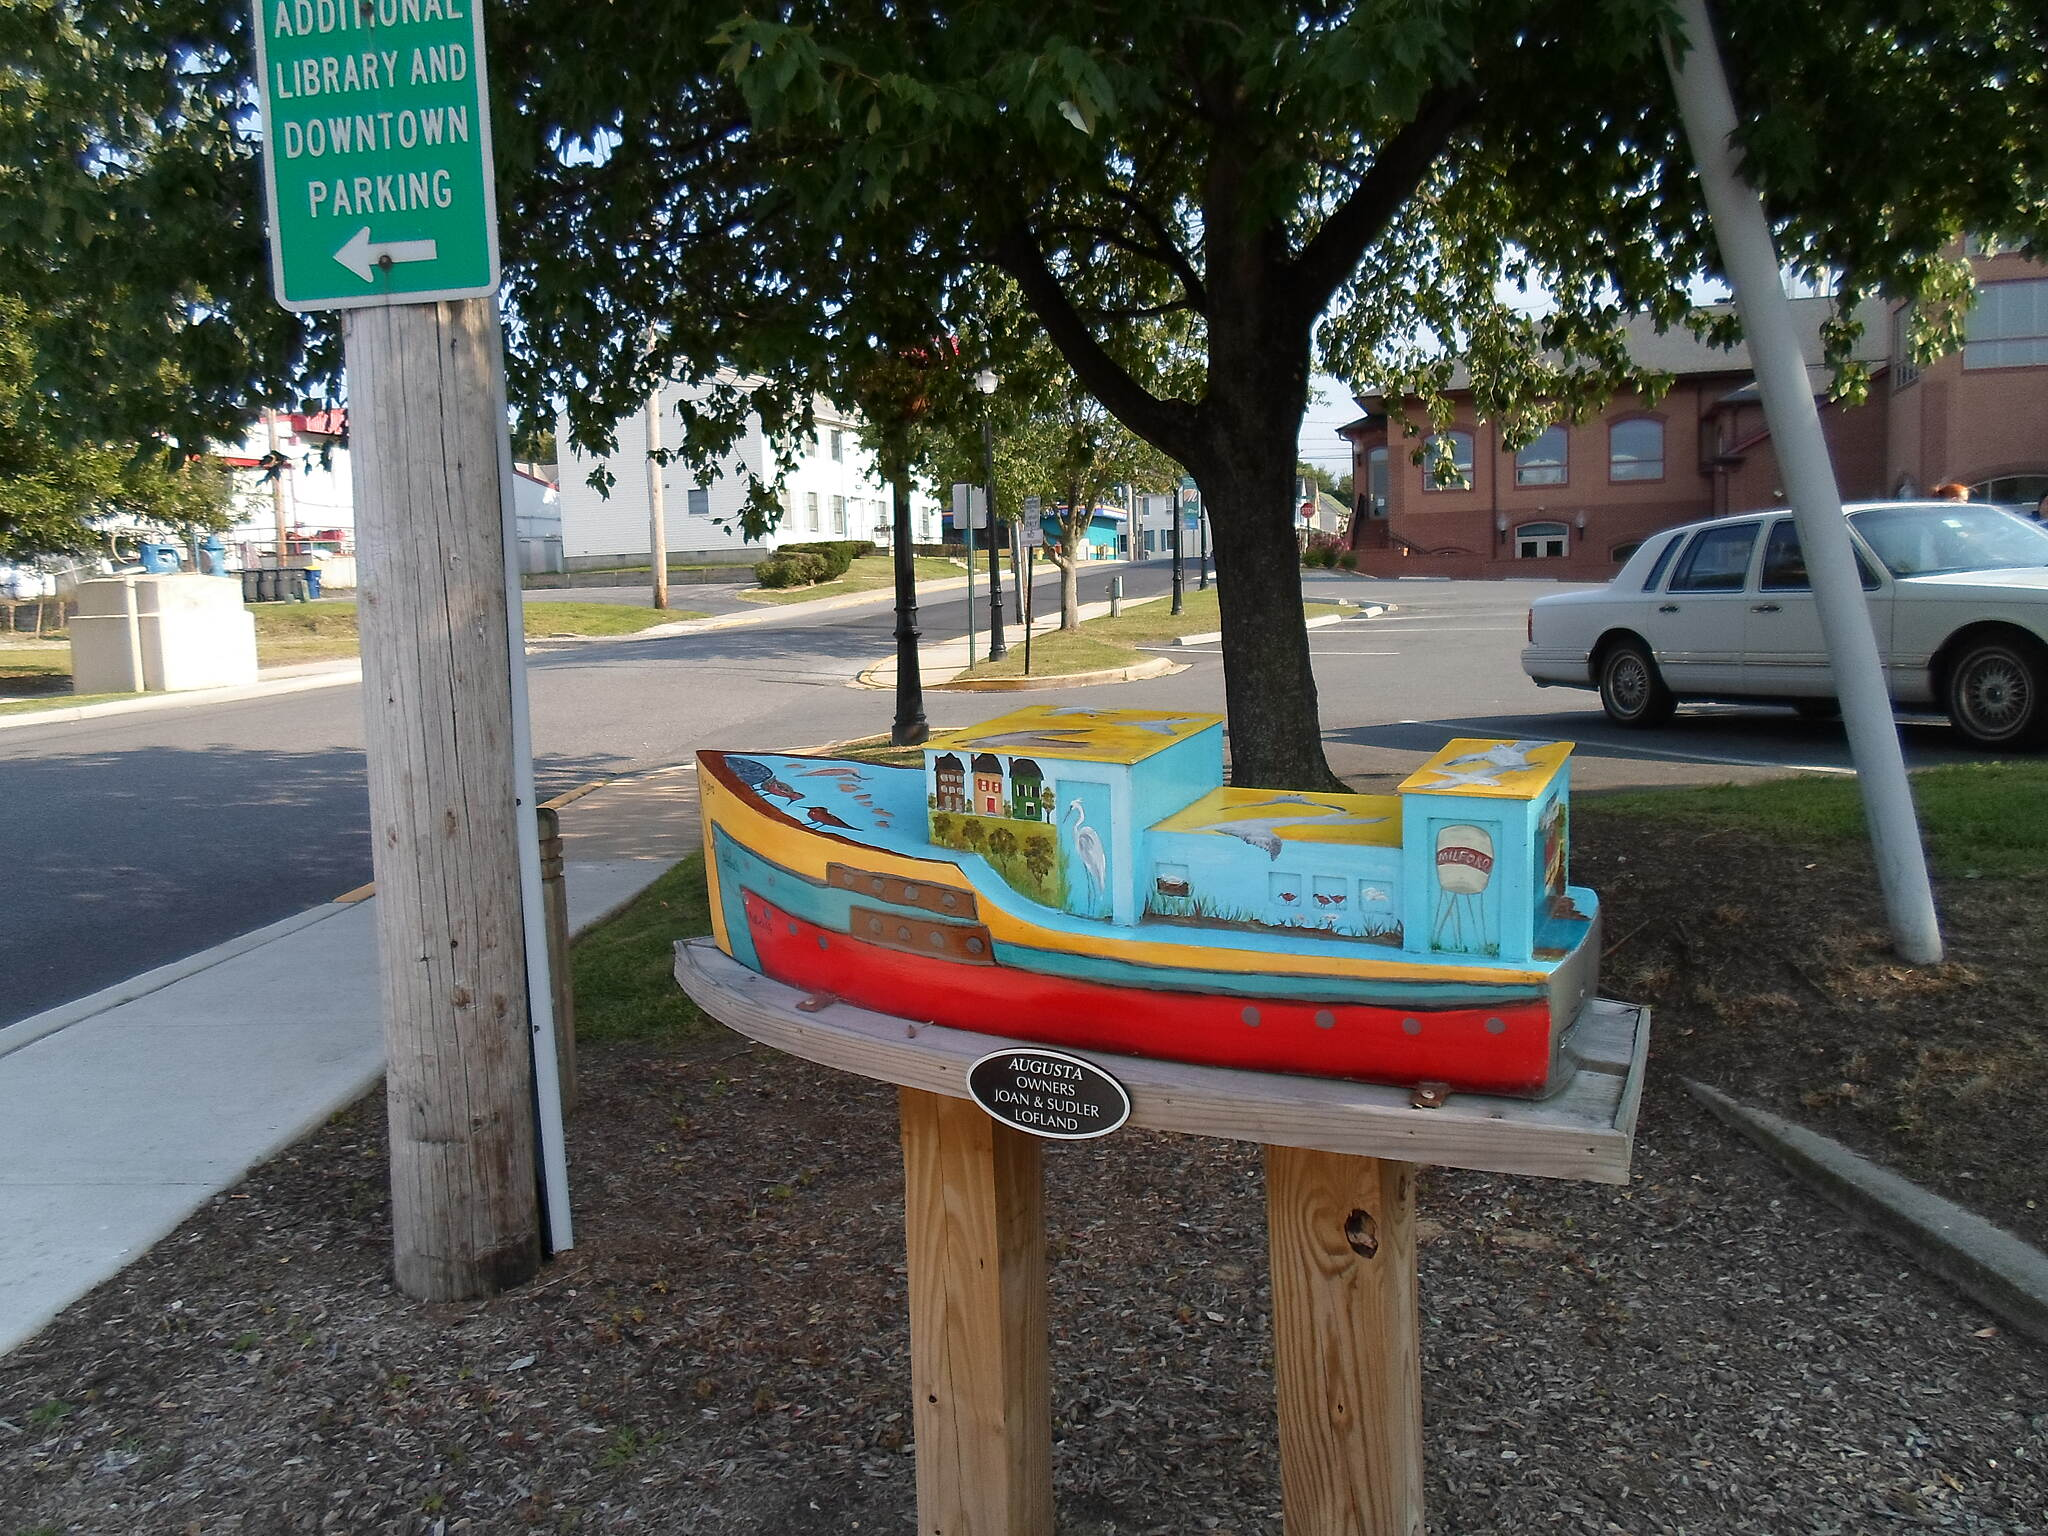 Mispillion River Greenway Mispillion River Greenway One of several ornately painted model boats that decorate the greenway in downtown Milford.